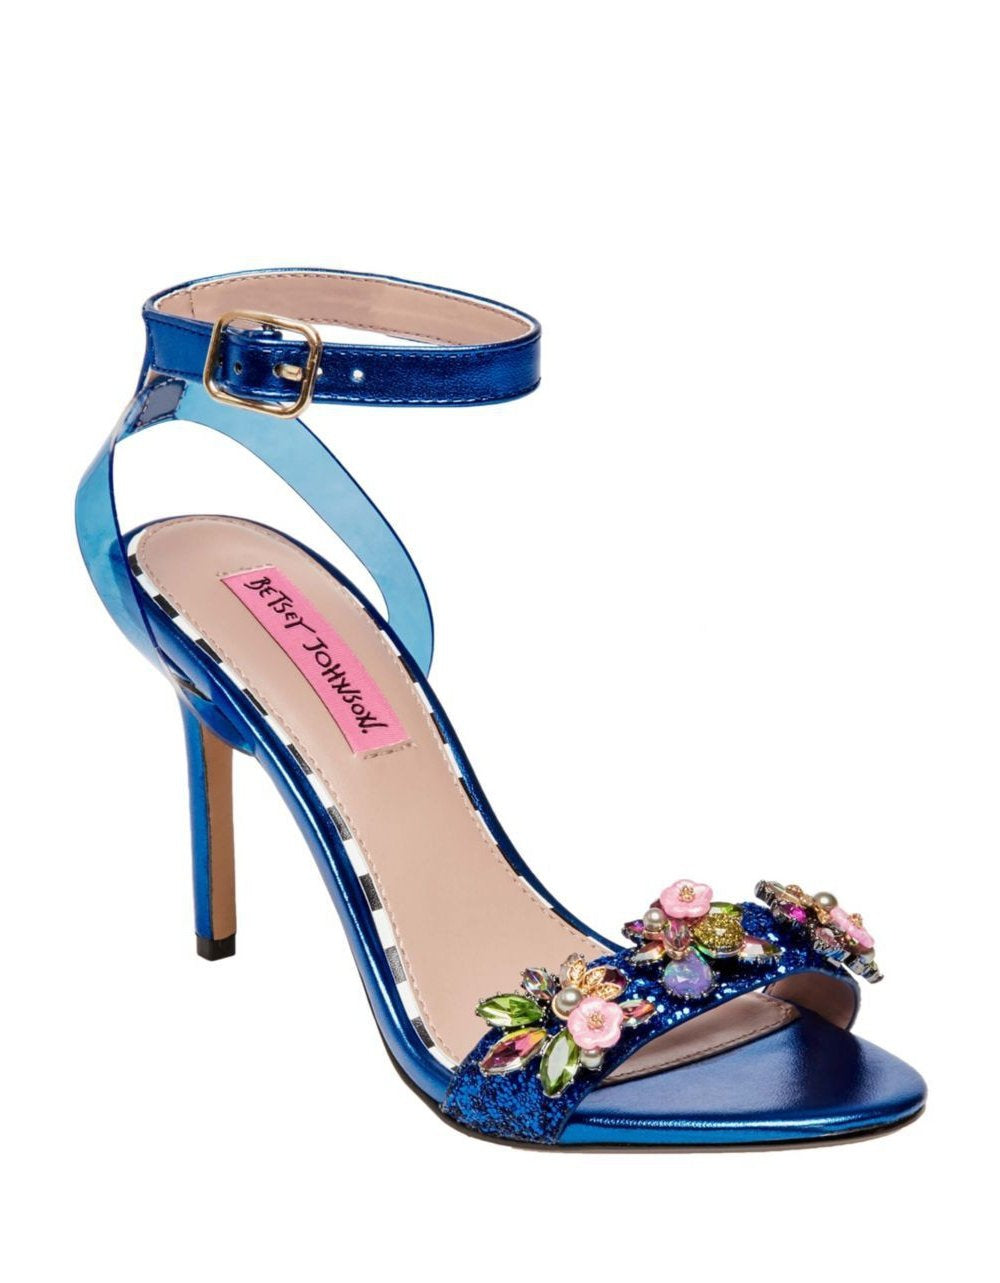 ALYNA BLUE MULTI - SHOES - Betsey Johnson